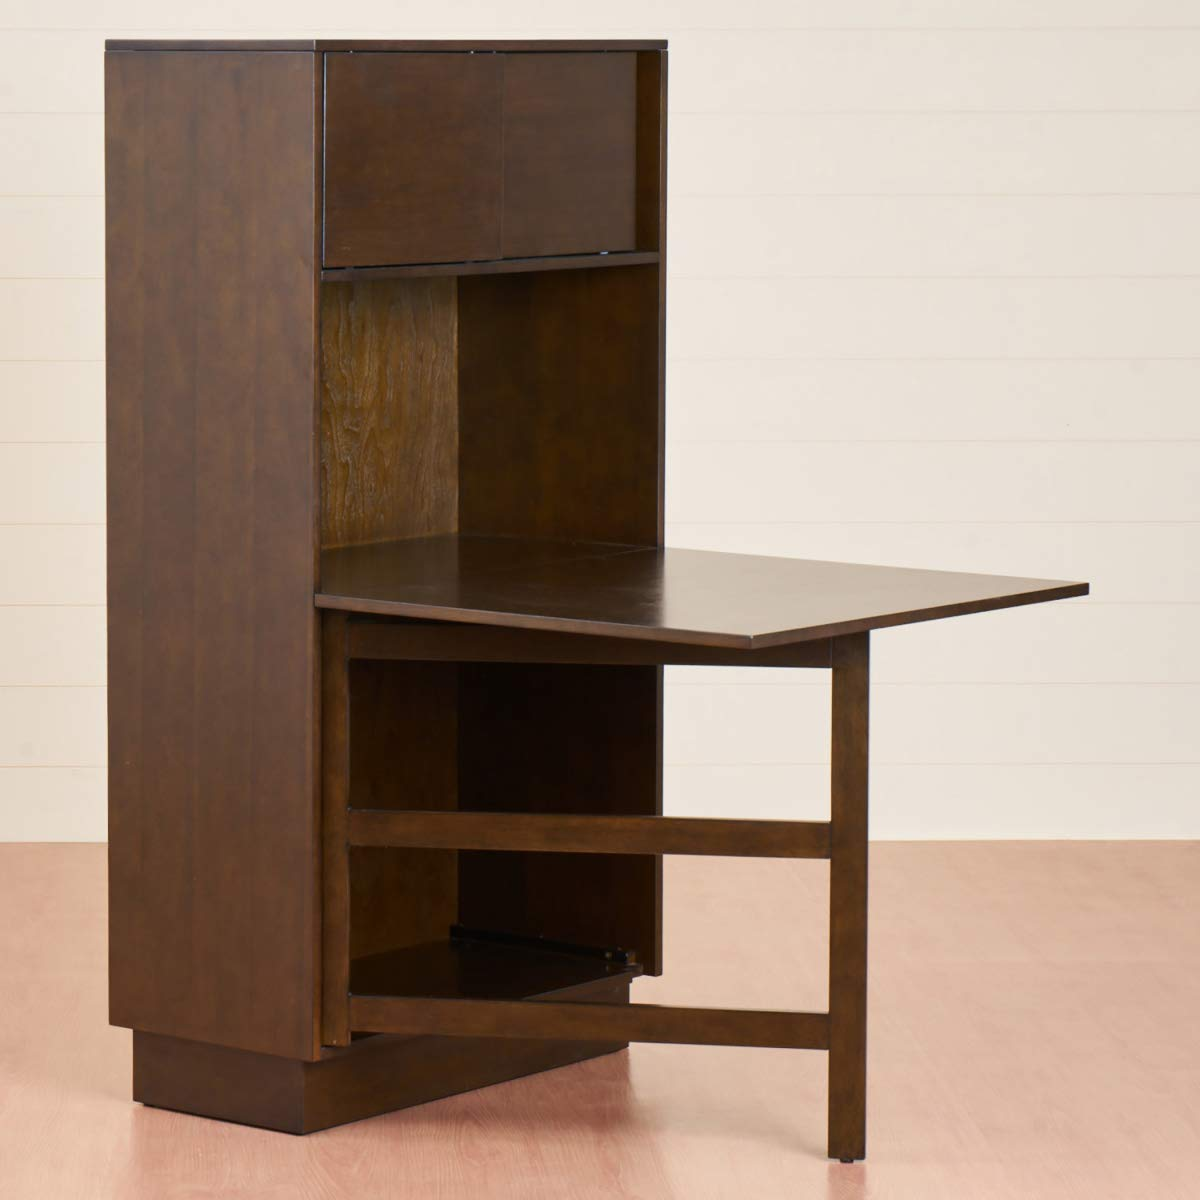 Home Centre Butterfly Kitchen Cabinet with Dropleaf Table